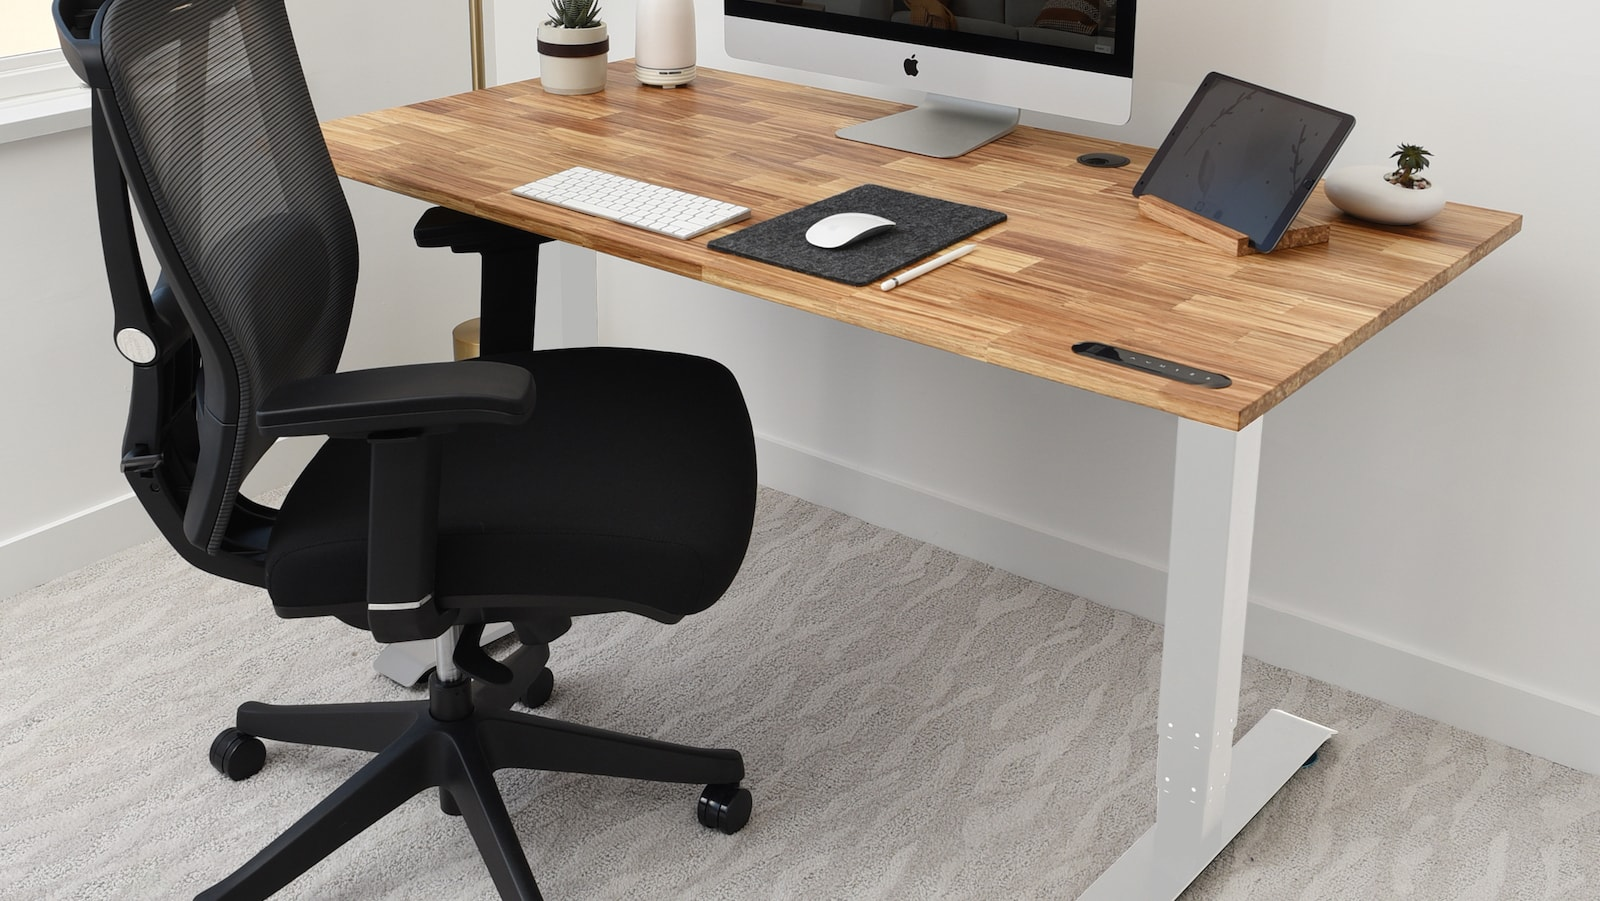 Work at this office standing desk that's motorized and has a built-in gyroscope